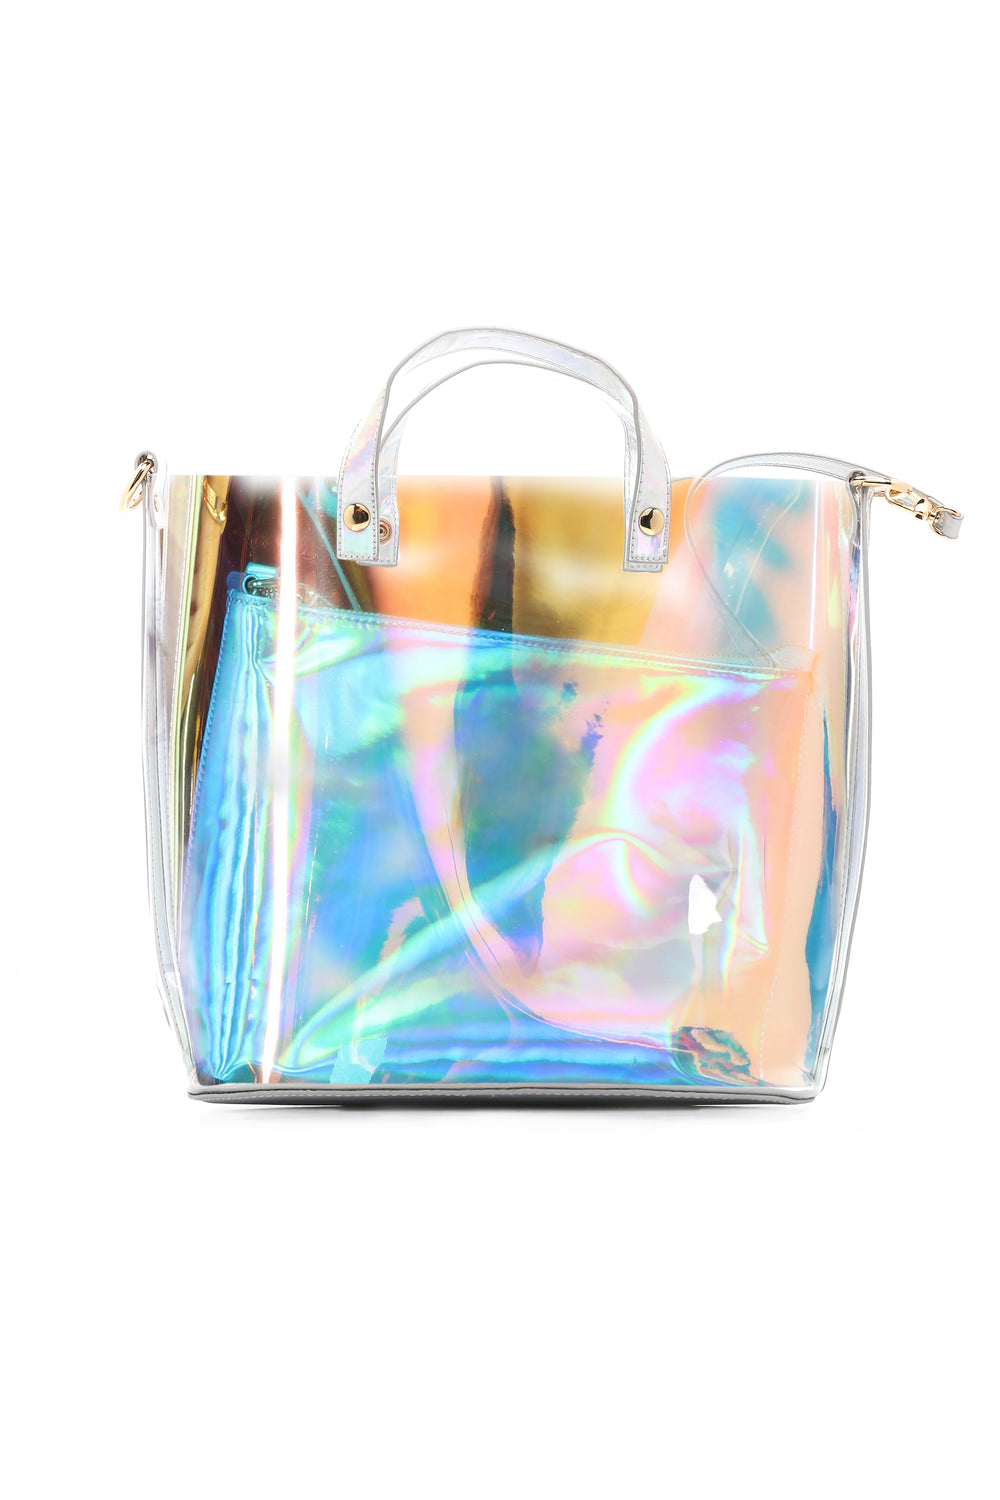 Vacation Time PVC Bag - Silver Multi